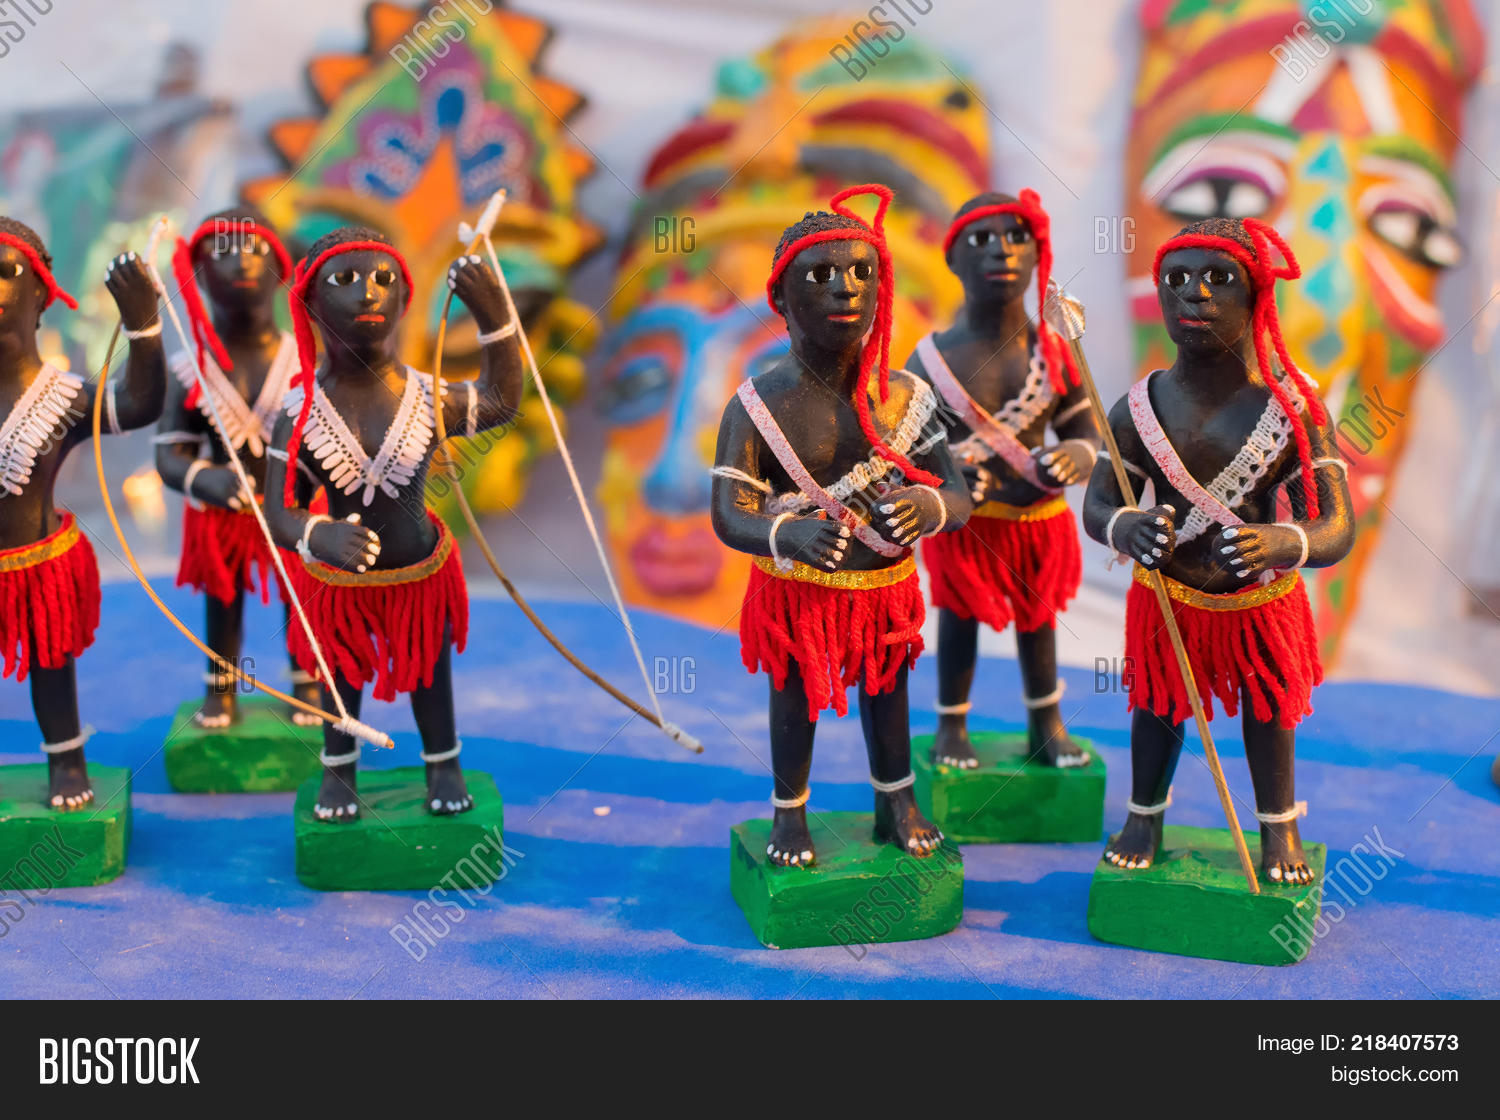 Clay Made Tribal Men Image Photo Free Trial Bigstock